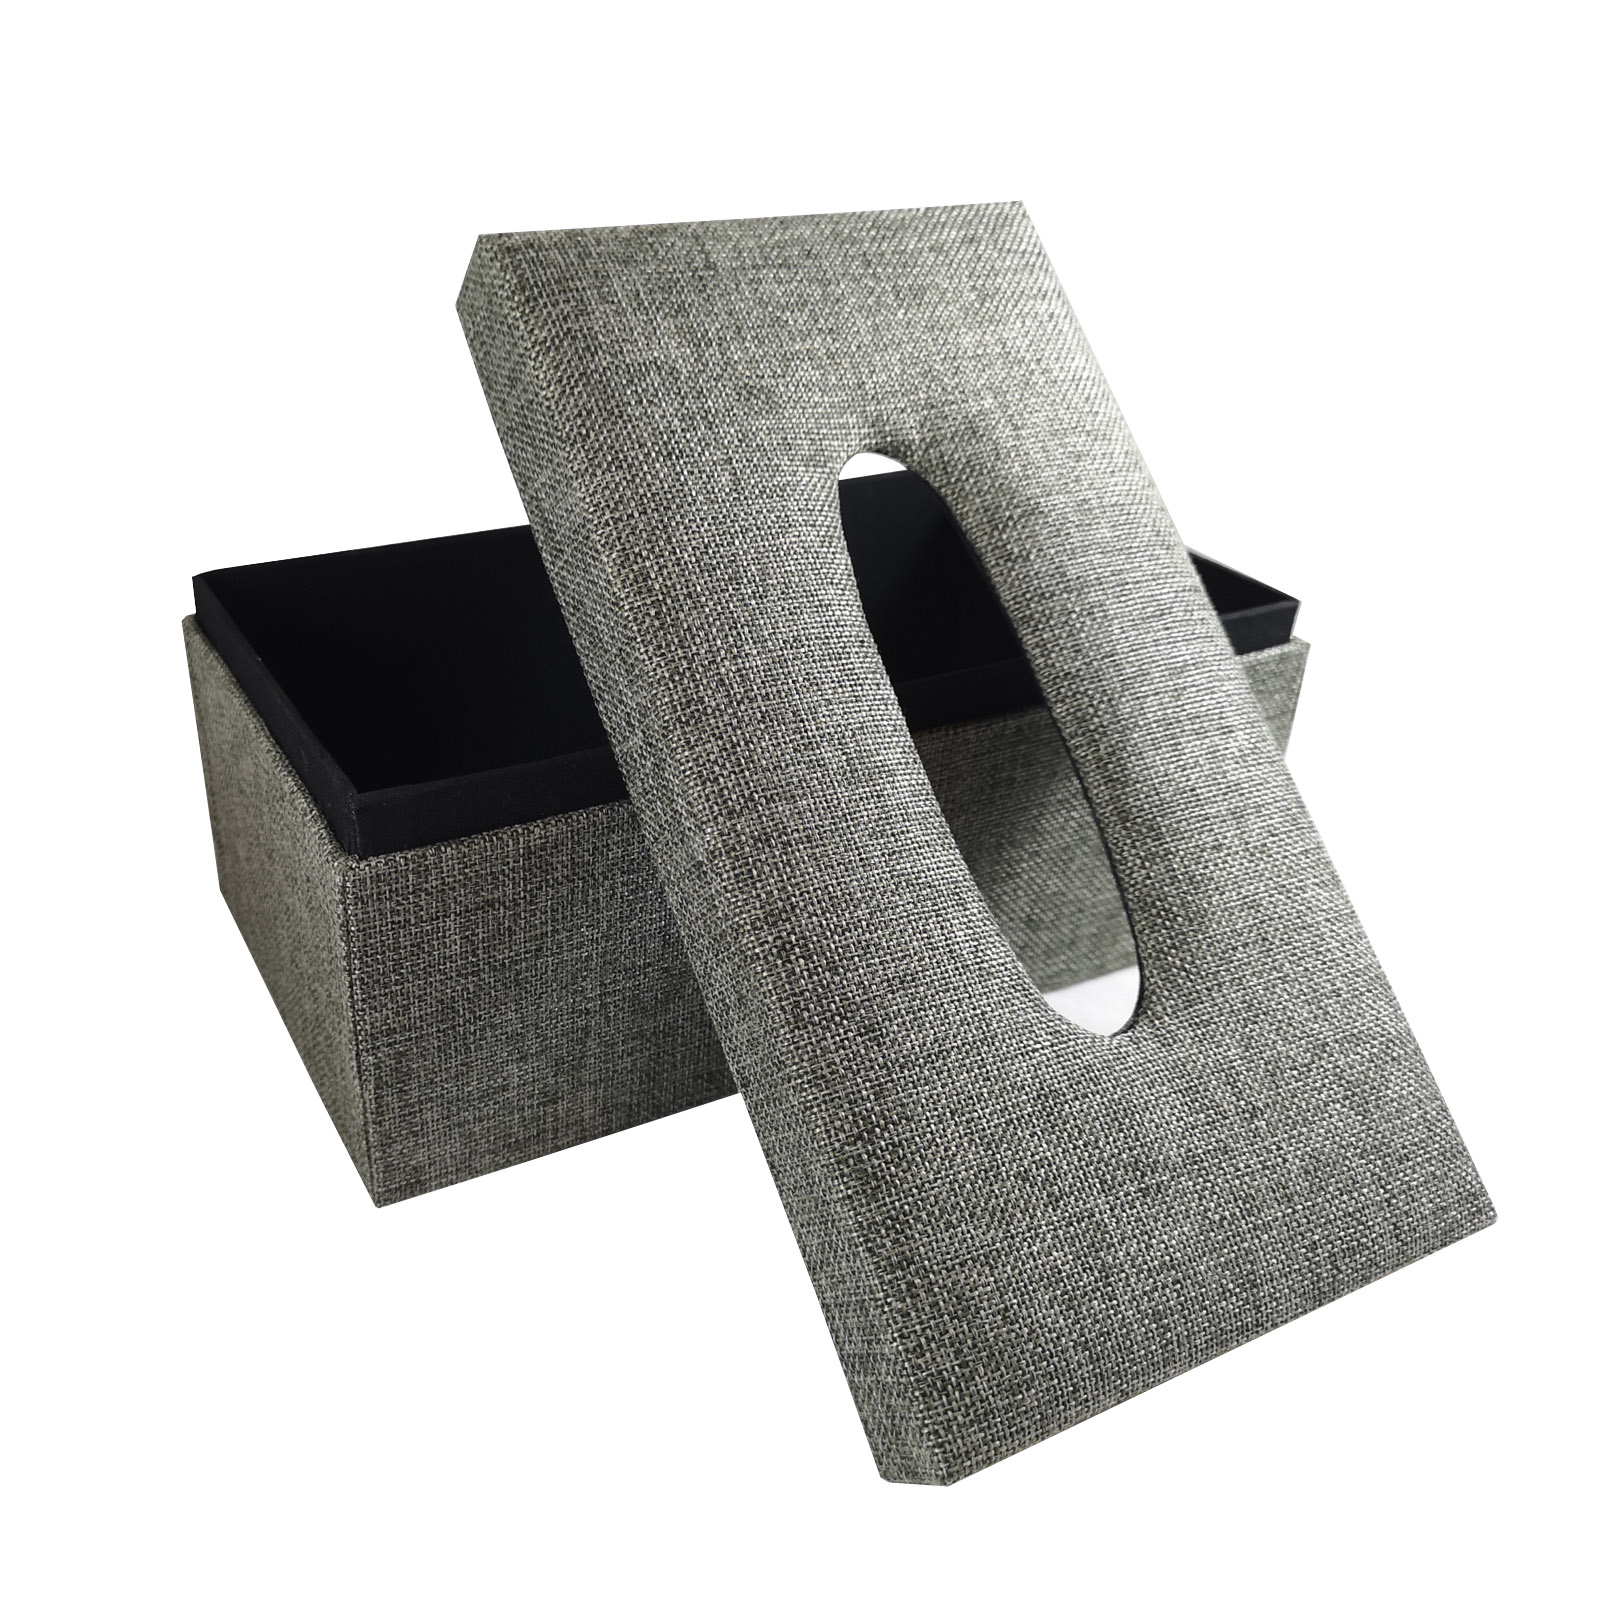 Grey and black linen fabric tissue box cover